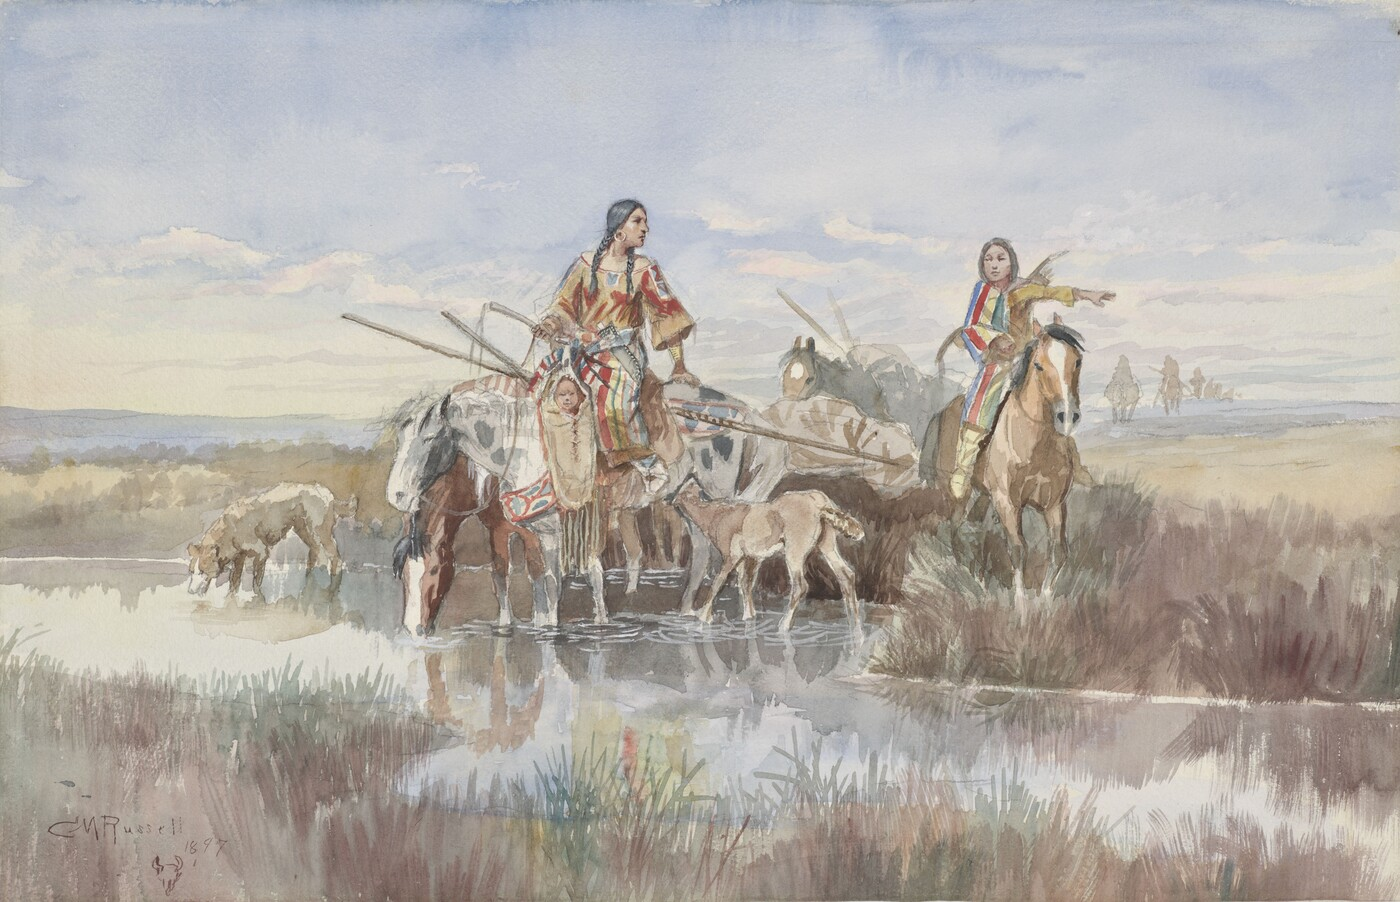 Charles M. Russell, Indian Family with Travois, 1897